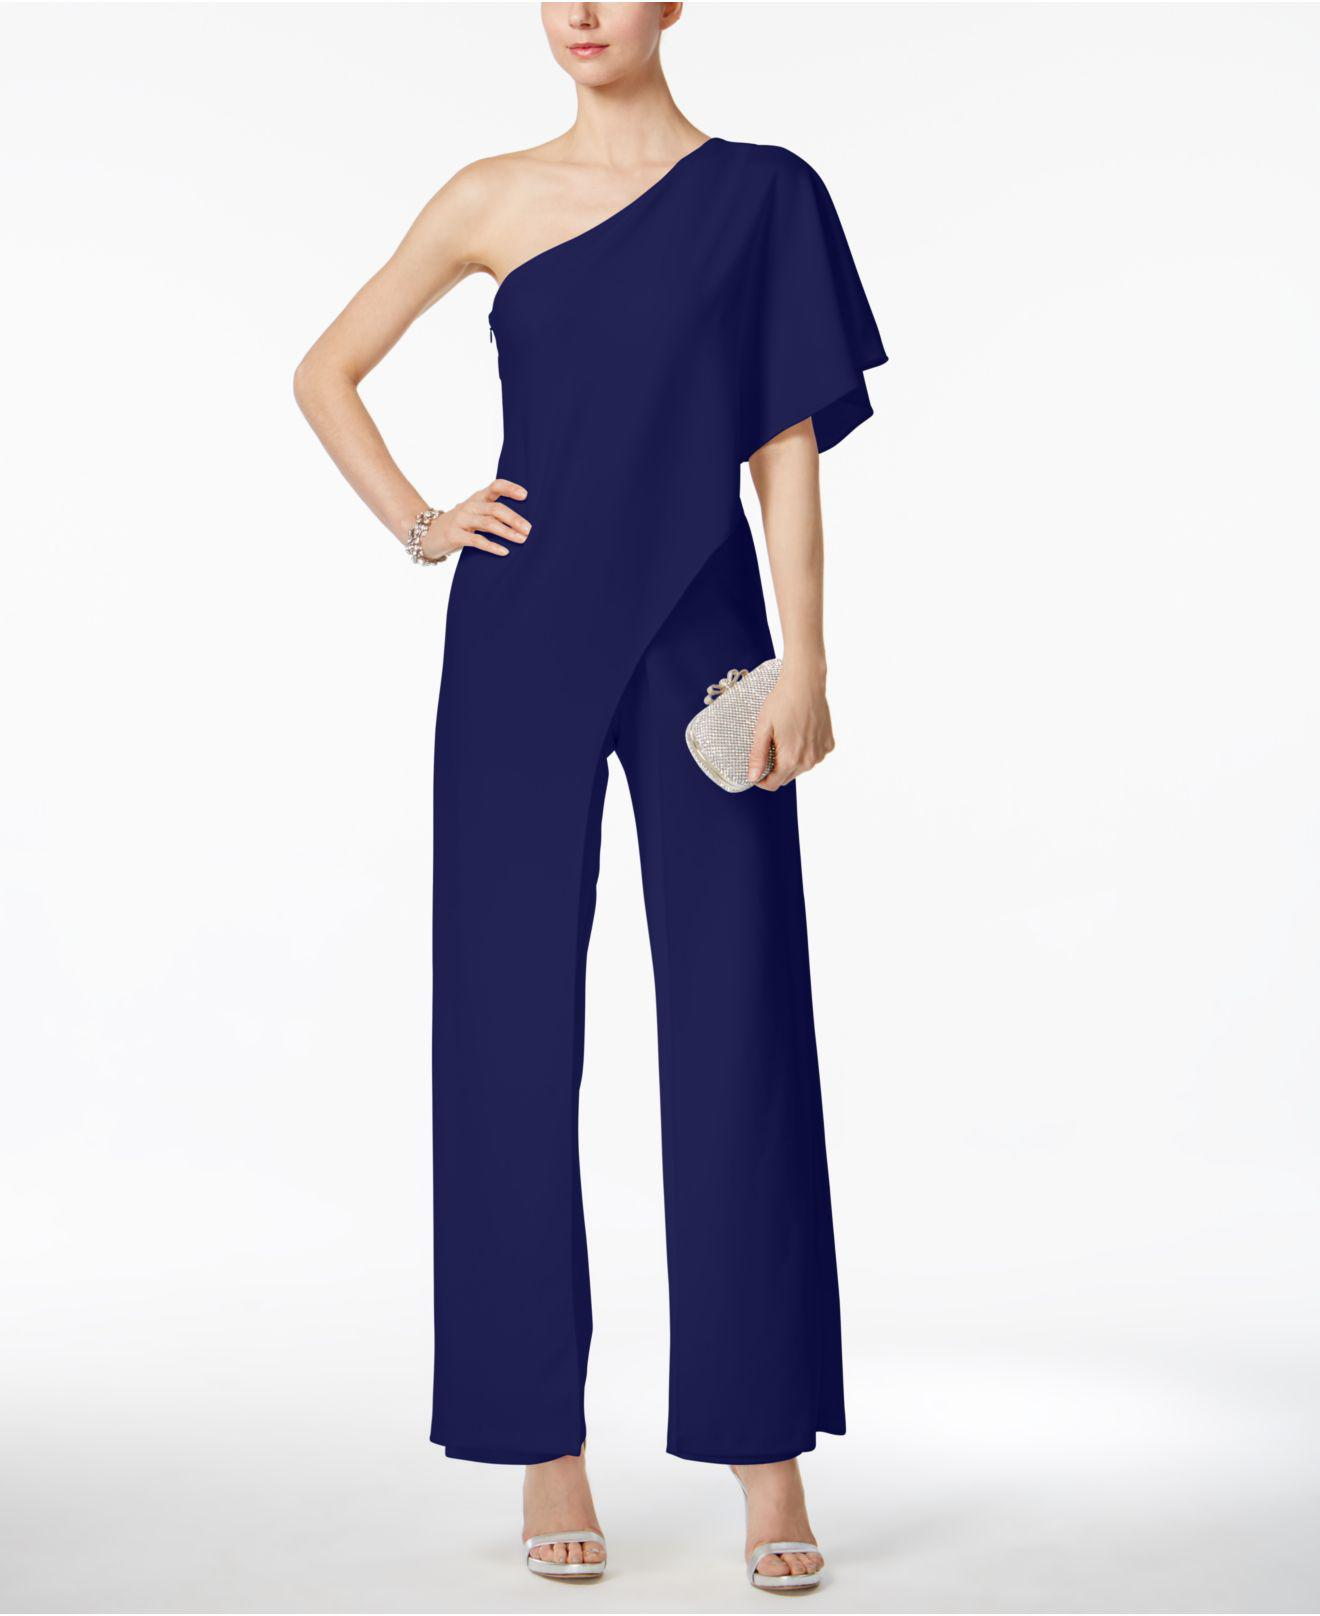 c97e4bcfcb8 Adrianna Papell Draped One-shoulder Jumpsuit in Blue - Lyst